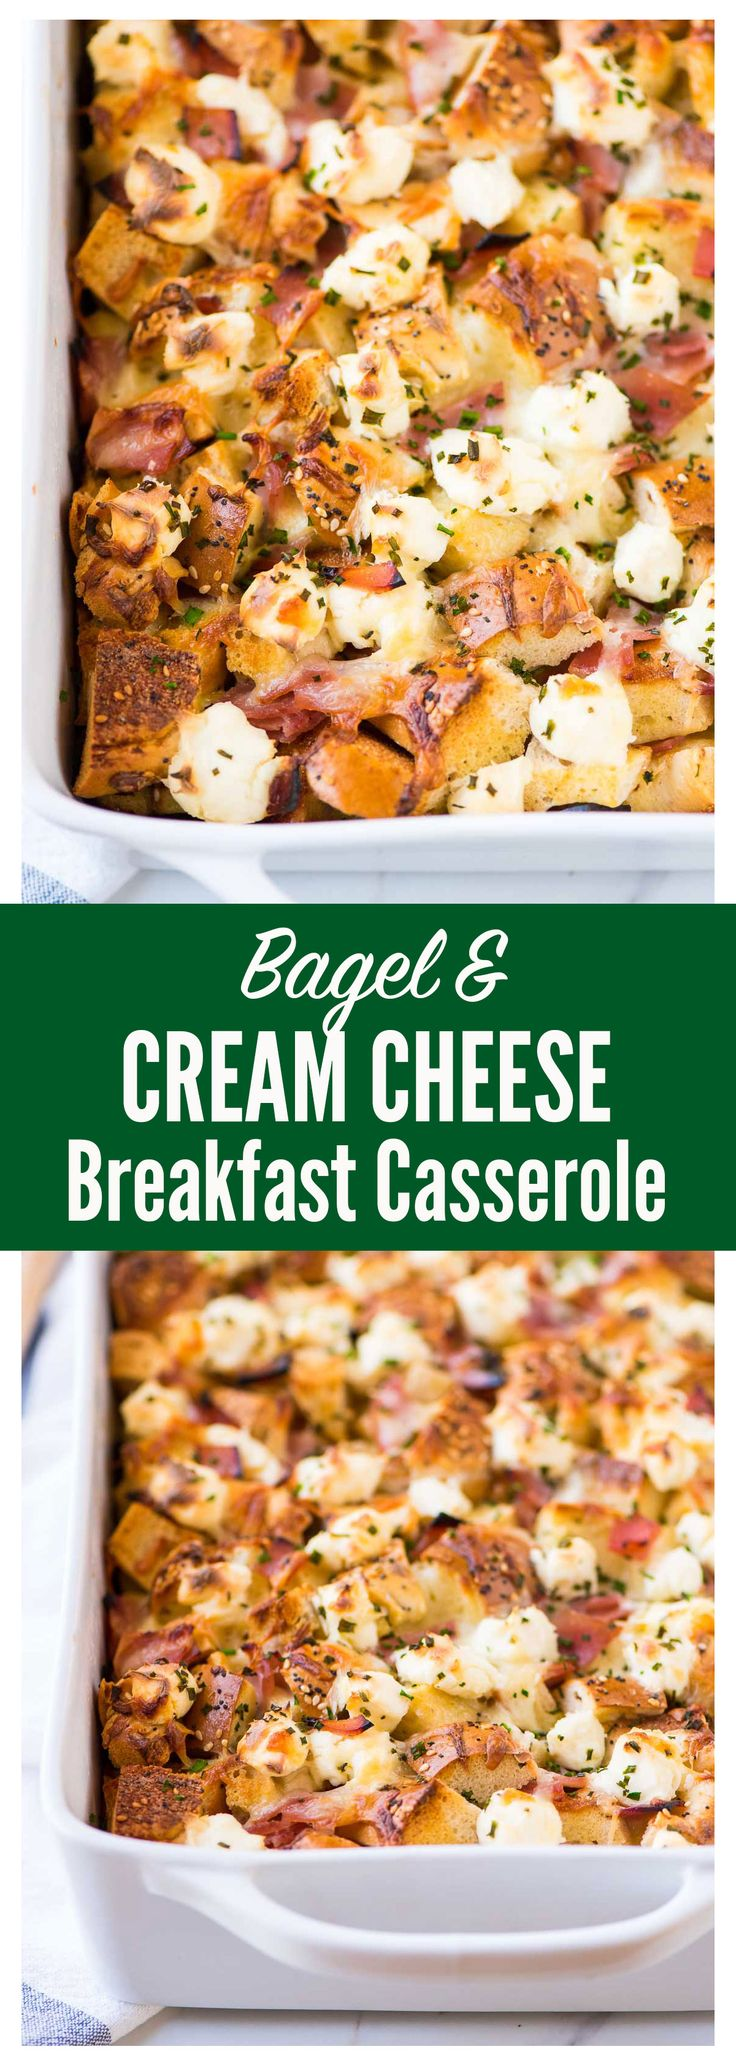 Everything Bagel and Cream Cheese Breakfast Casserole. Easy make-ahead breakfast recipe that's perfect for a crowd! Recipe at wellplated.com | @wellplated